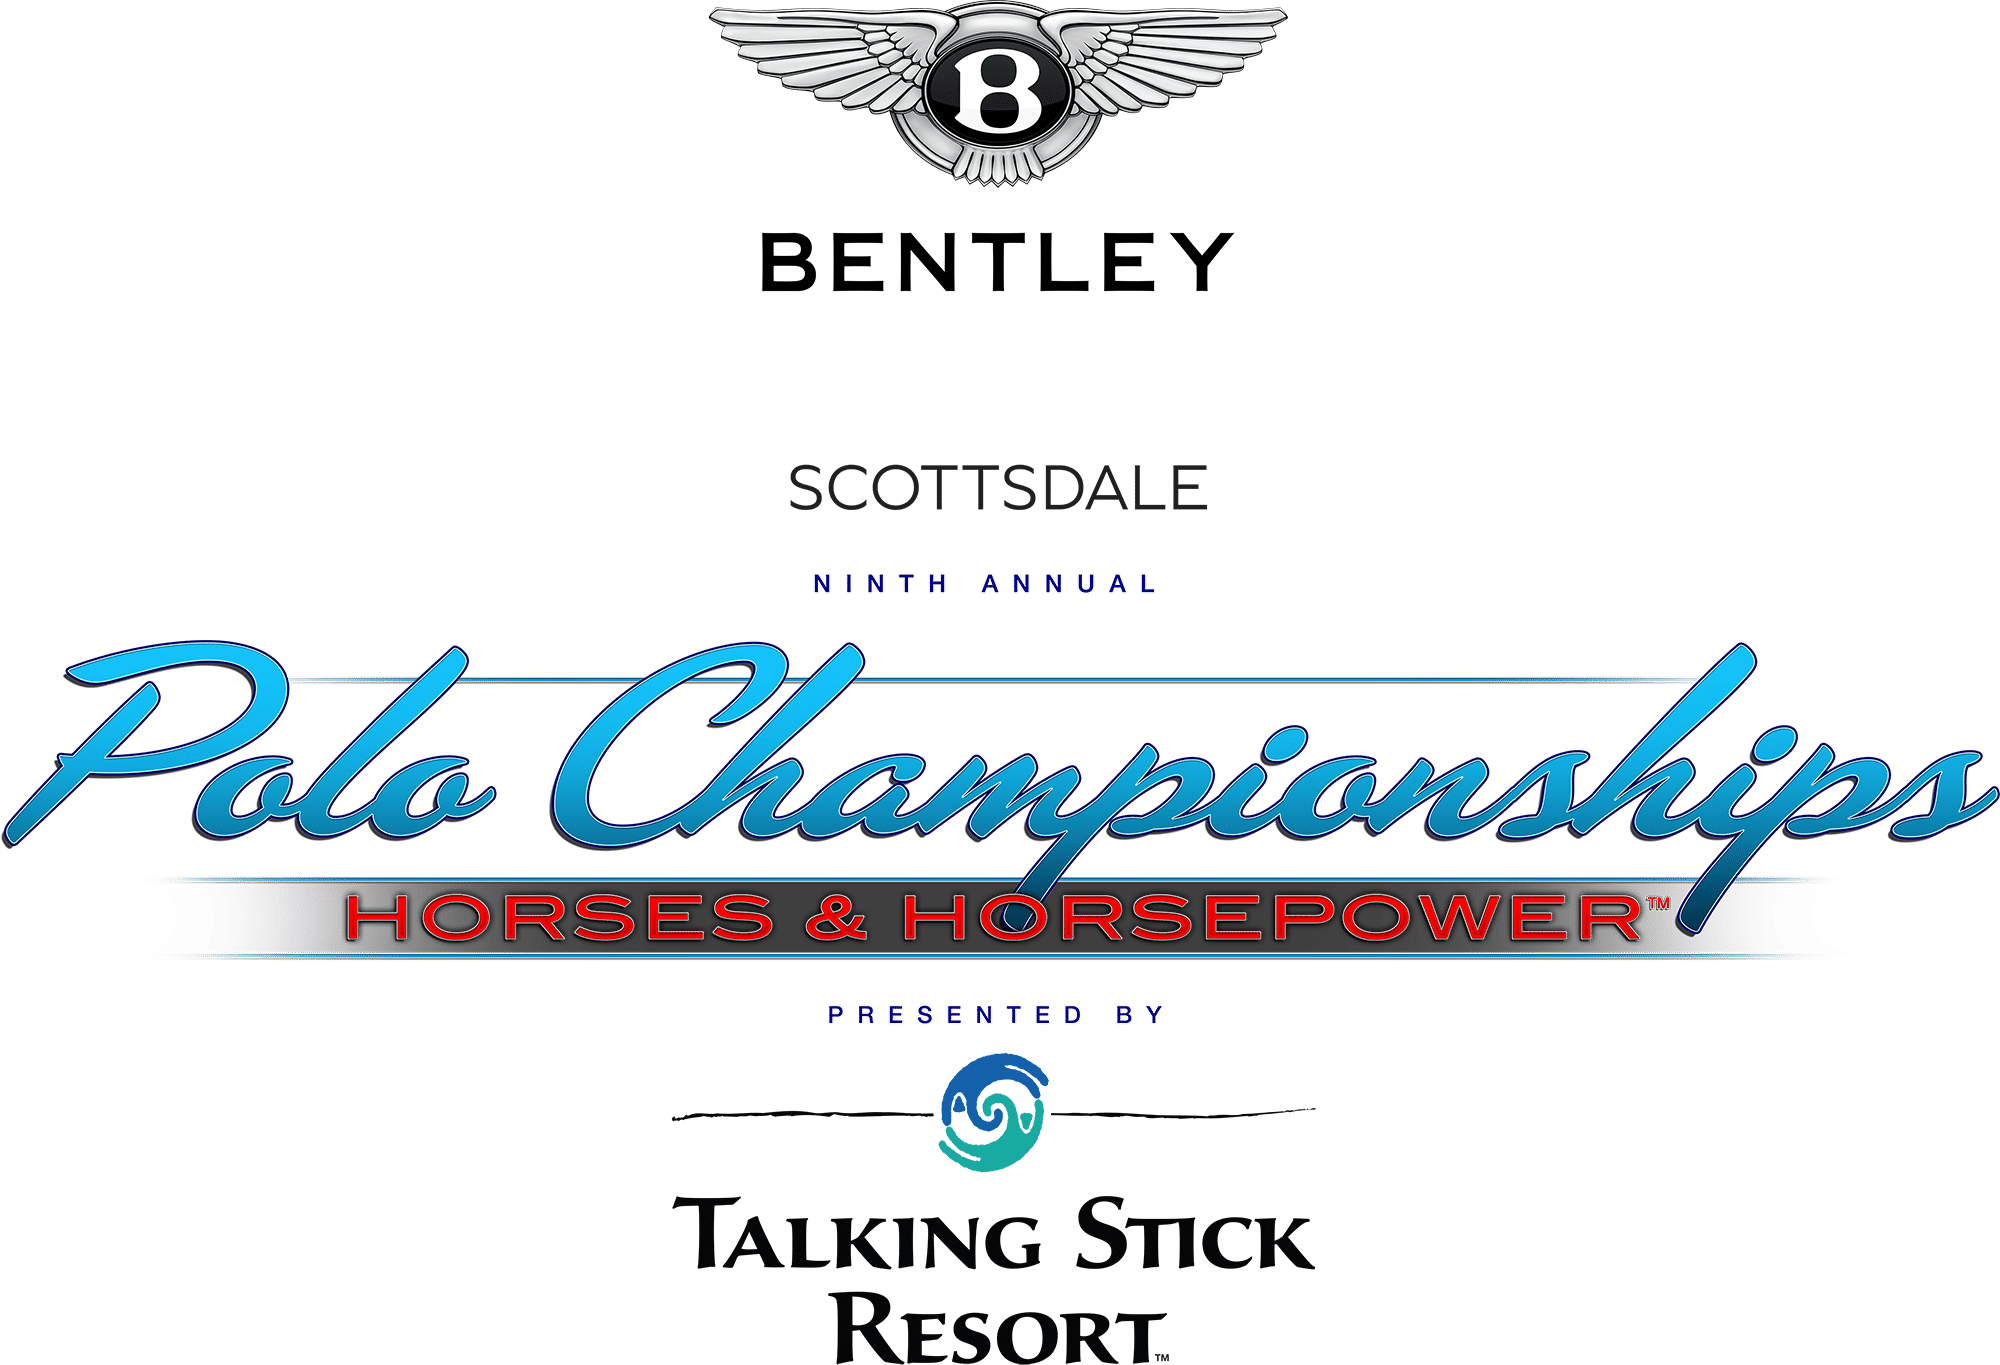 Bentley Scottsdale Polo Championships: Horses & Horsepower